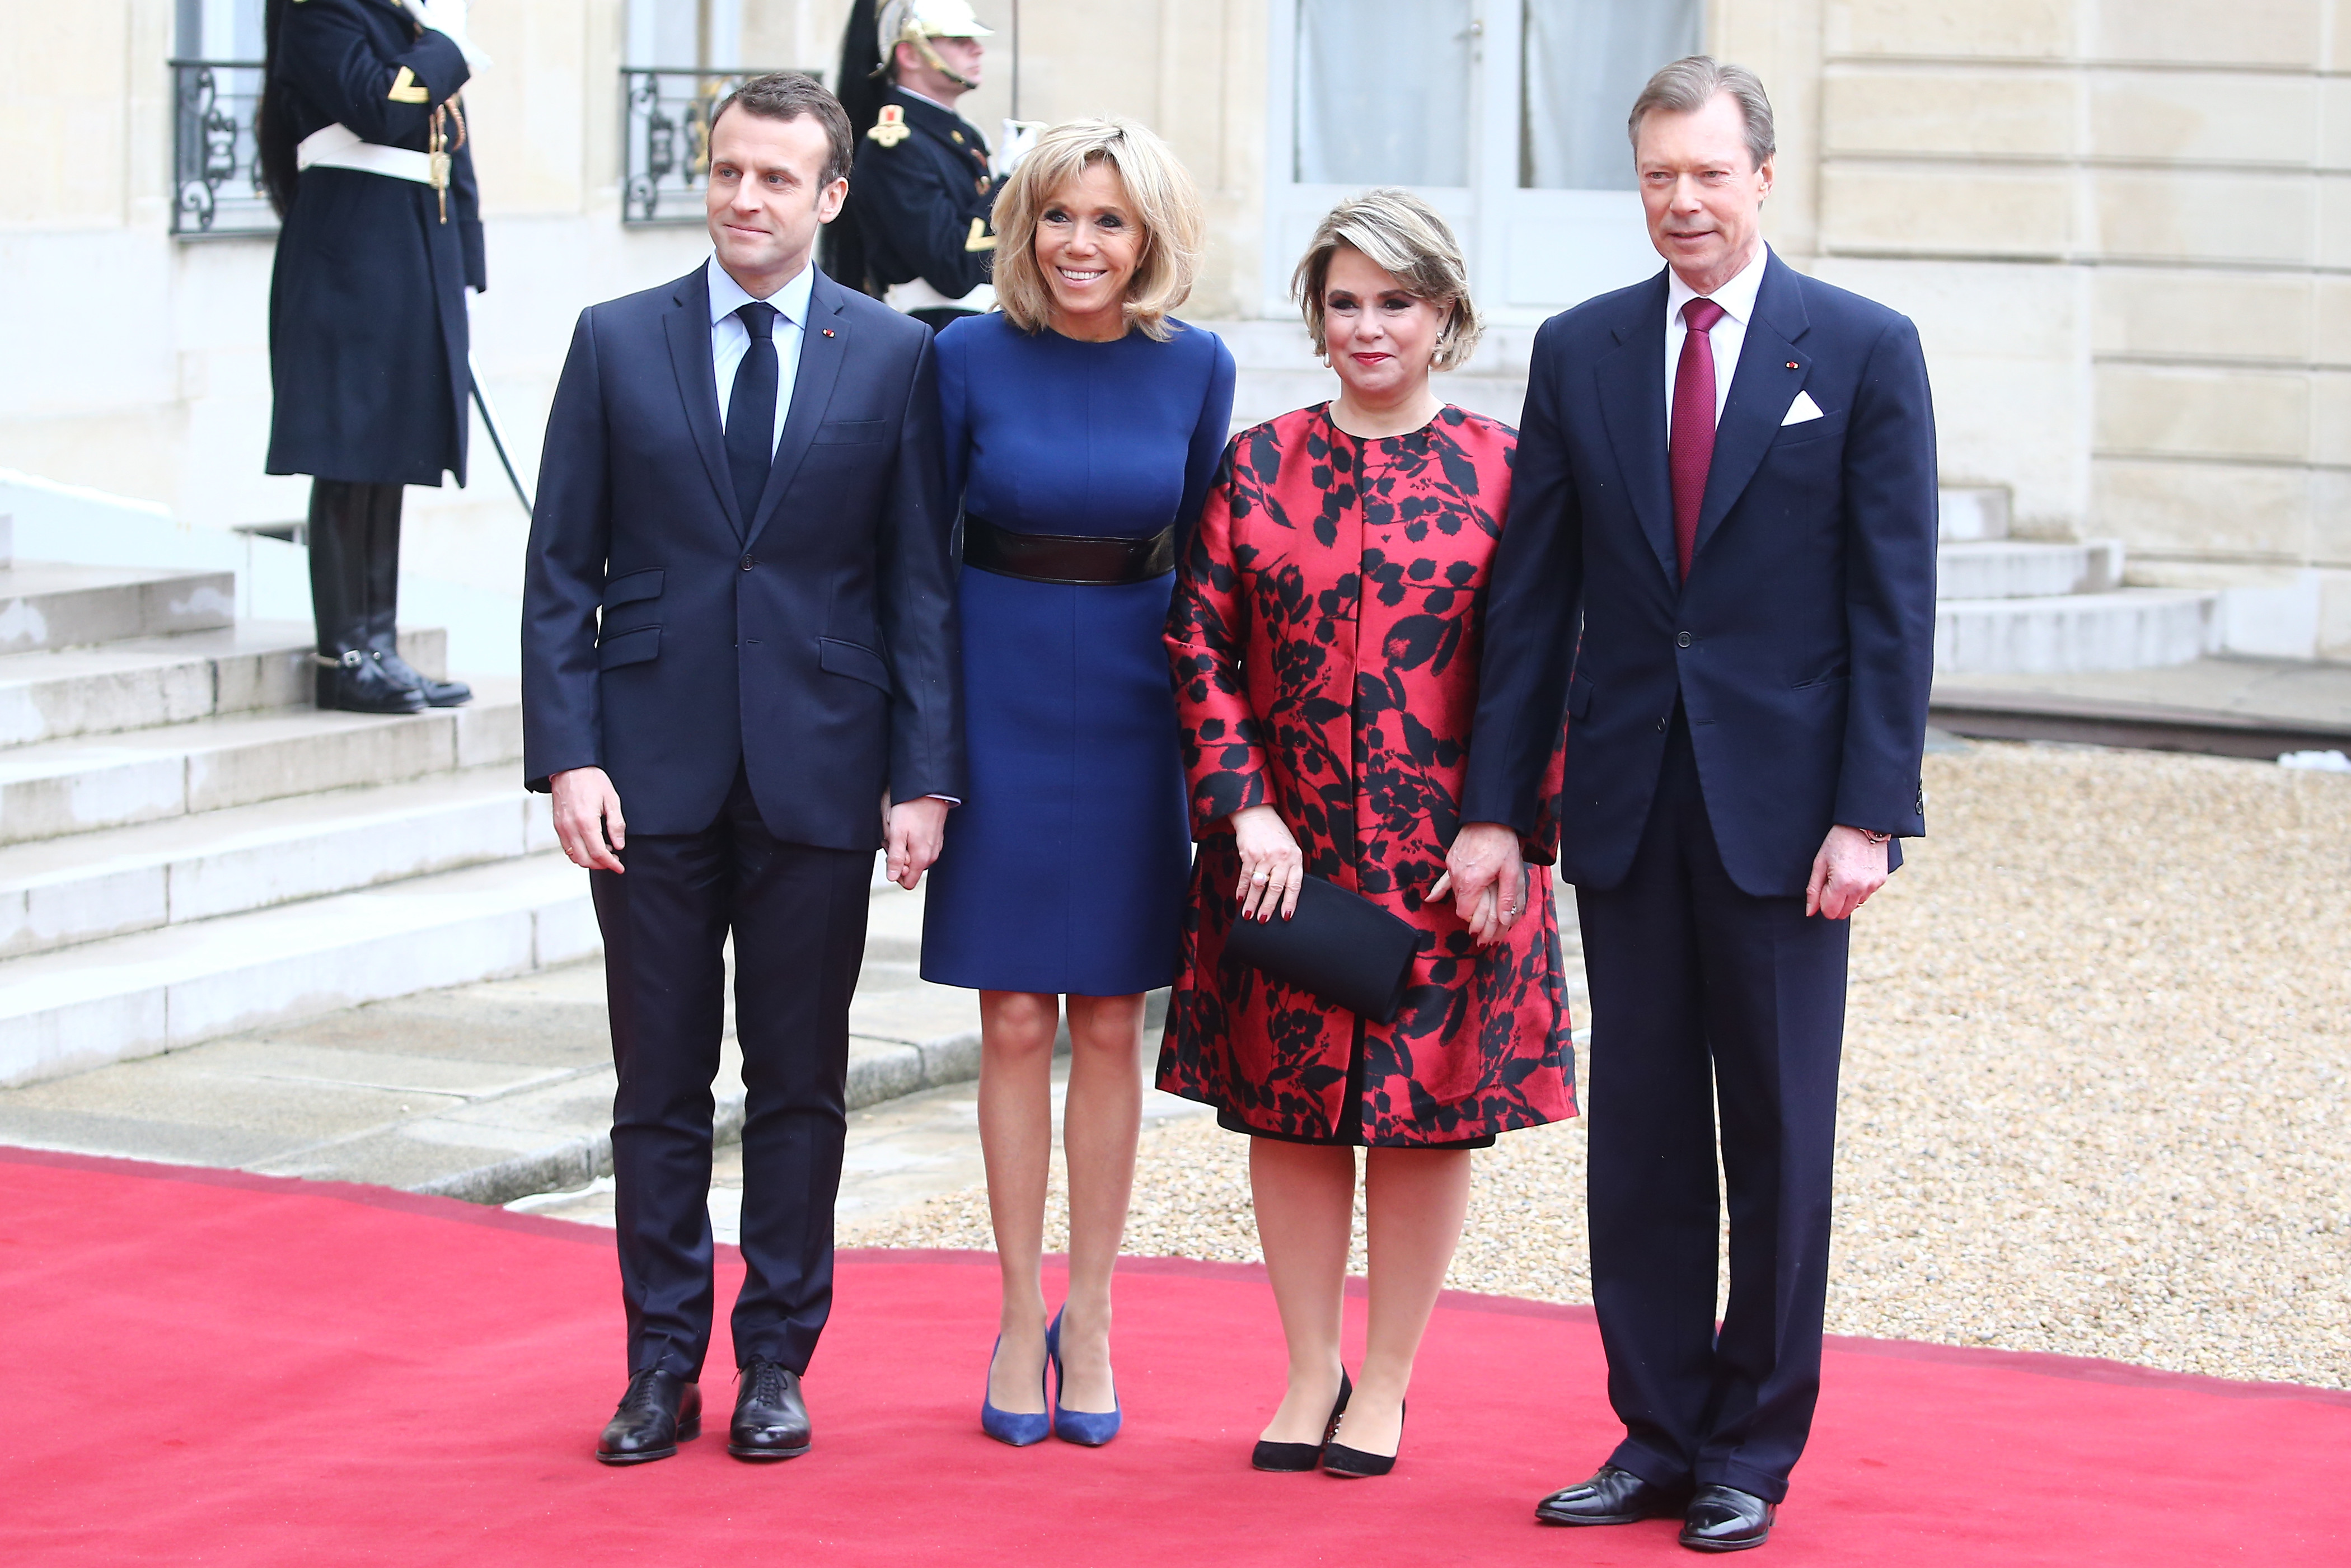 Maria Teresa, Grand Duchess of Luxembourg, Henri, Grand Duke of Luxembourg, French President Emmanuel Macron and Brigitte Macron pose in the courtyard of Elysee Palace on March 19, 2018 in Paris, France. <P> Pictured: Brigitte Macron, Maria Teresa Grand Duchess of Luxembourg, Henri Grand Duke of Luxembourg and French President Emmanuel Macron  <B>Ref: SPL1672783  190318  </B><BR/> Picture by: Splash News<BR/> </P><P> <B>Splash News and Pictures</B><BR/> Los Angeles:	310-821-2666<BR/> New York:	212-619-2666<BR/> London:	870-934-2666<BR/> <span id=